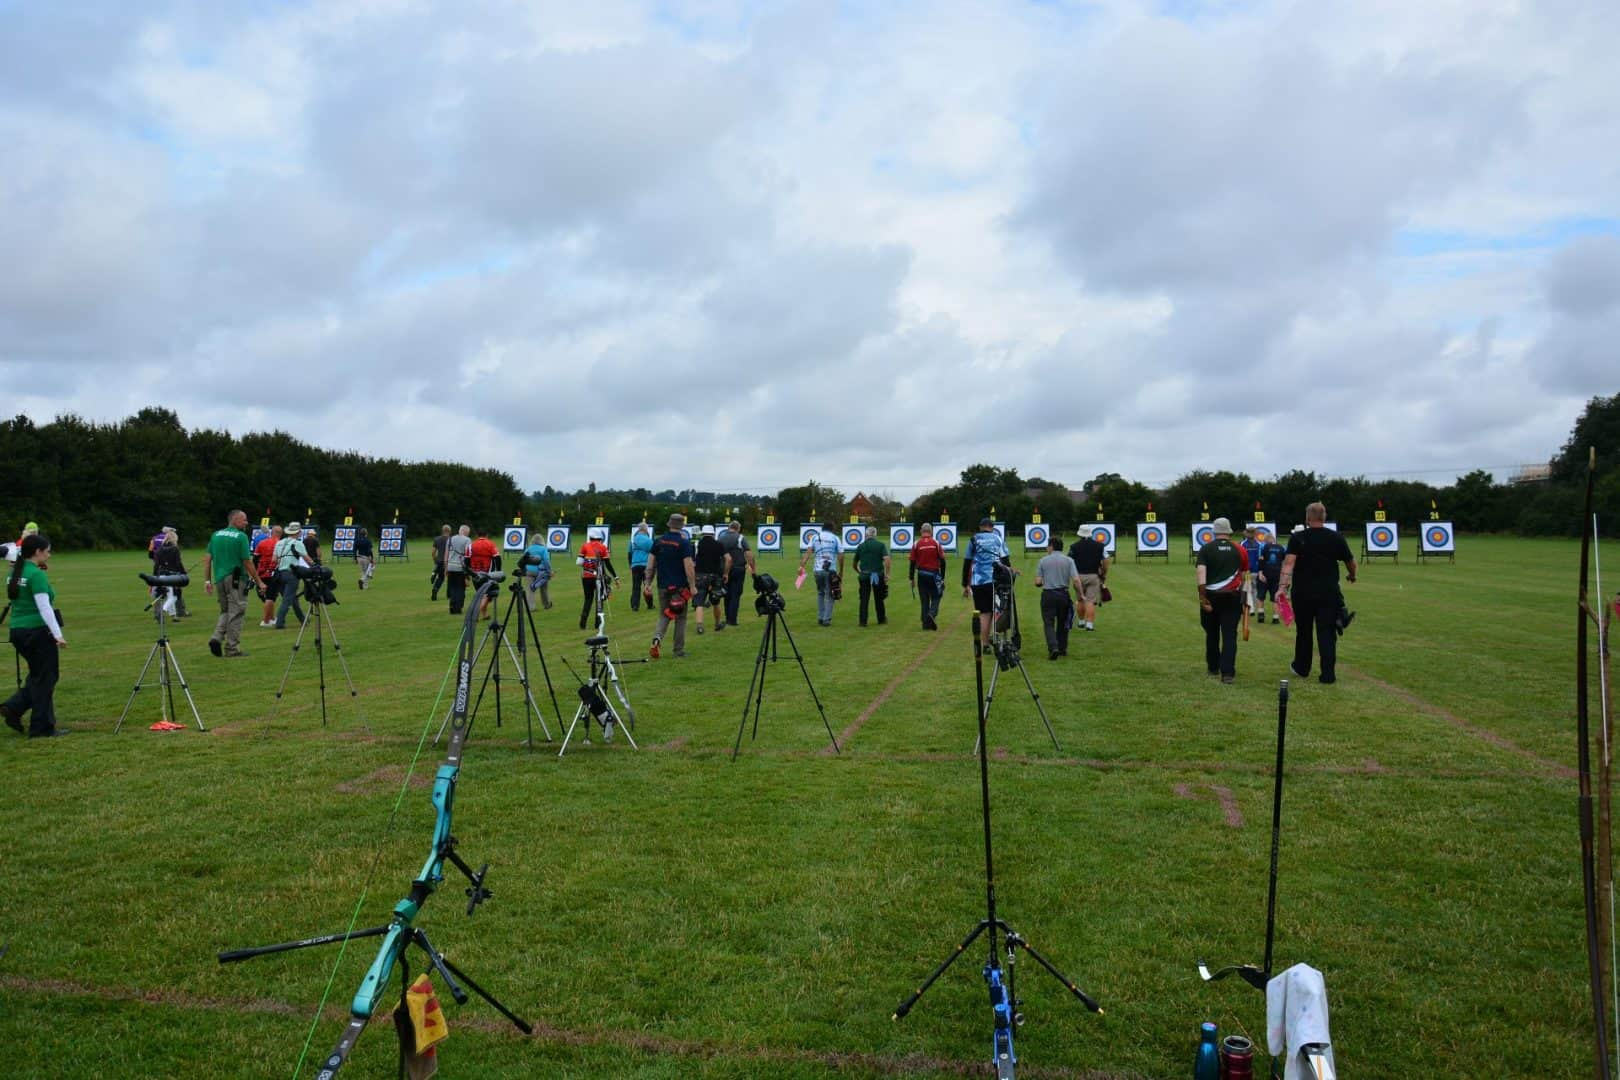 Archers at a competition